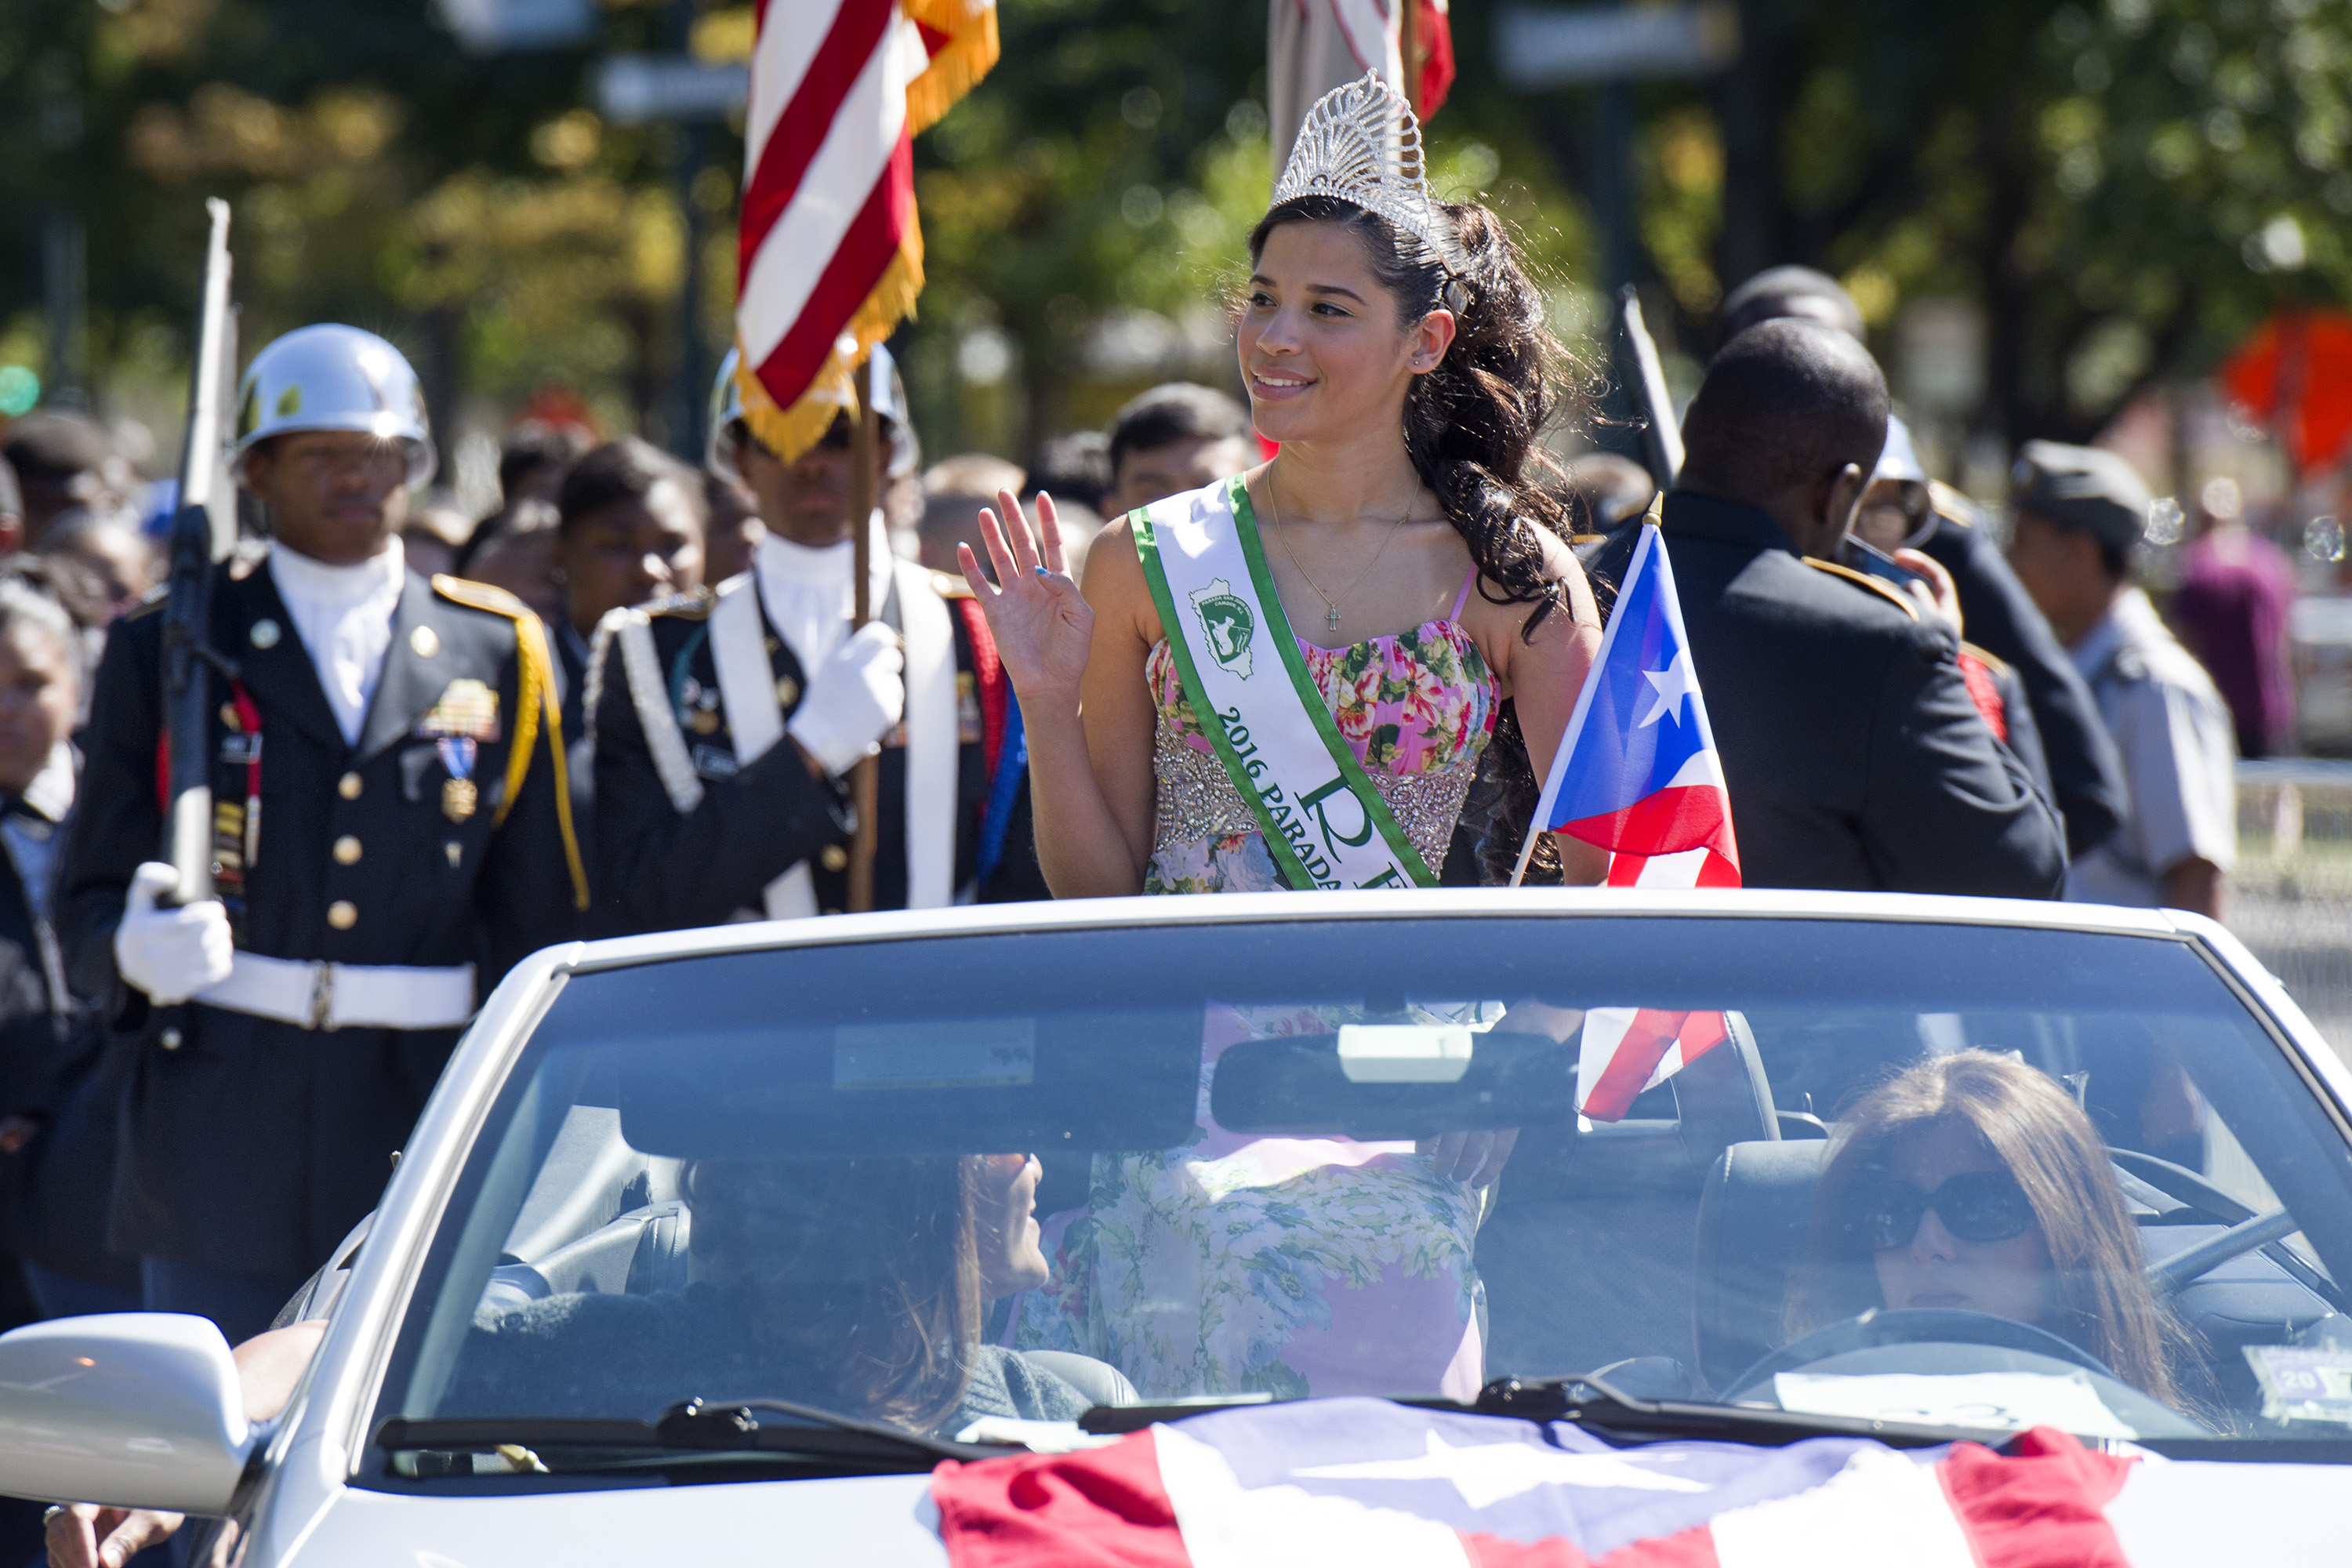 Jessica Lugo, 14, of Cherry Hill, N.J., was among the pageant royalty in the 2016 Puerto Rican Day Parade on the Ben Franklin Parkway.